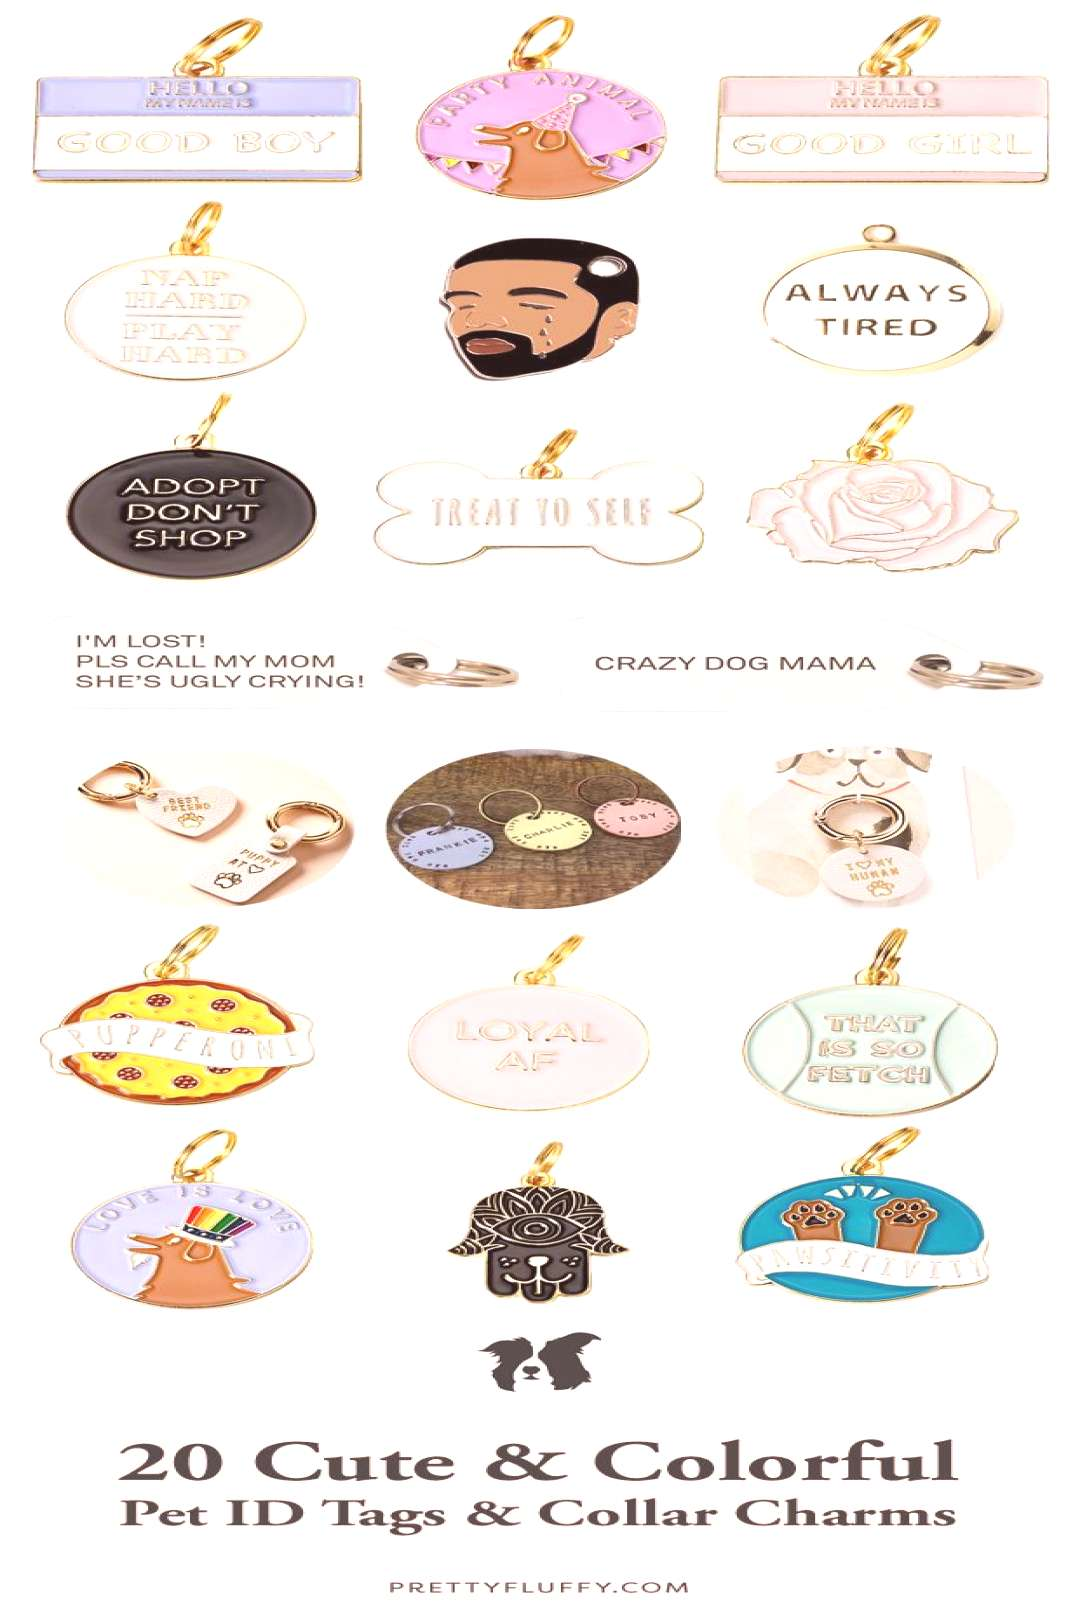 20 Cute & Colorful Pet ID Tags & Dog Collar Charms - Pretty Fluffy